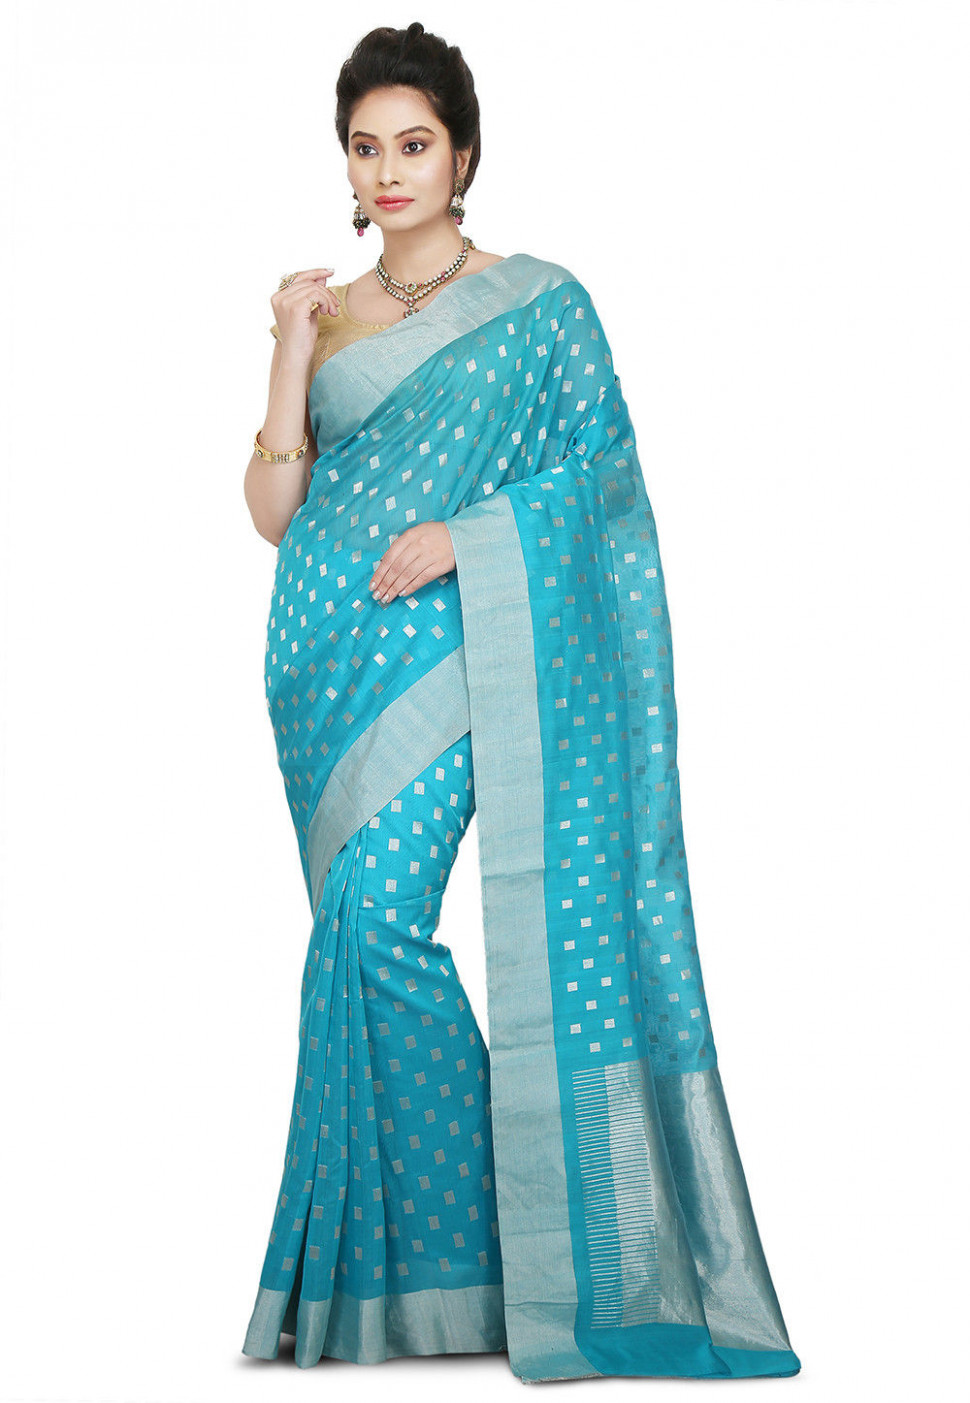 Handloom Pure Chanderi Silk Saree in Light Blue : SKBA215 - light blue saree